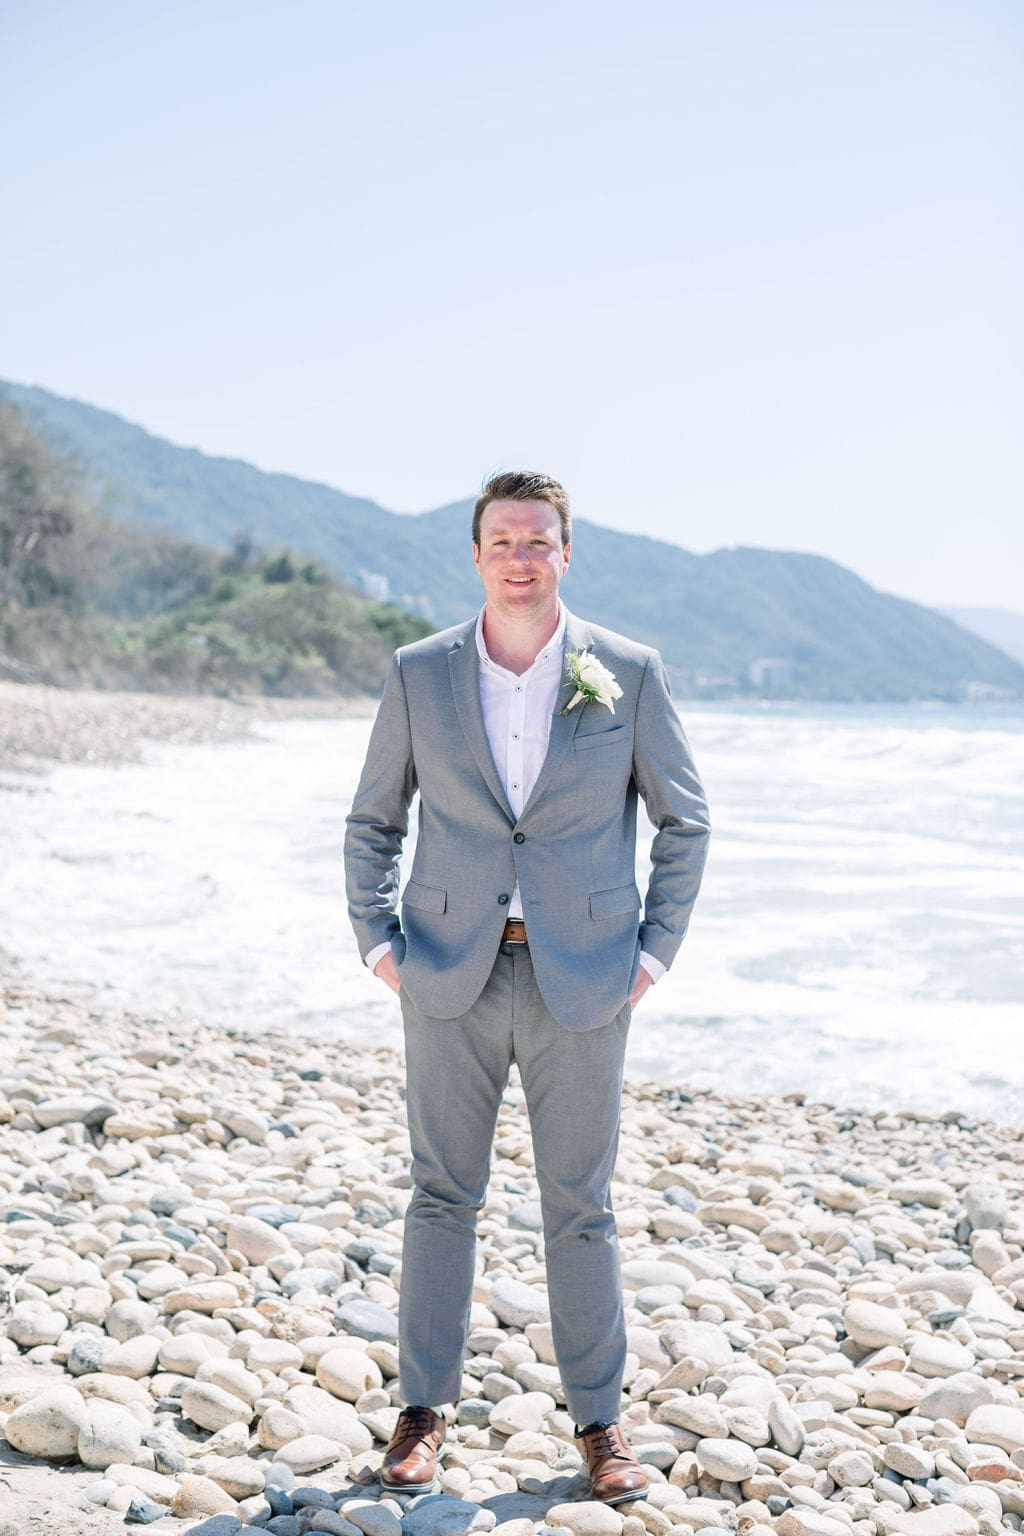 Mexican Destination Wedding With Green, Blush & Gold Tones, Photography by Jess Leigh Photographer for Destination Wedding Blog Adriana Weddings